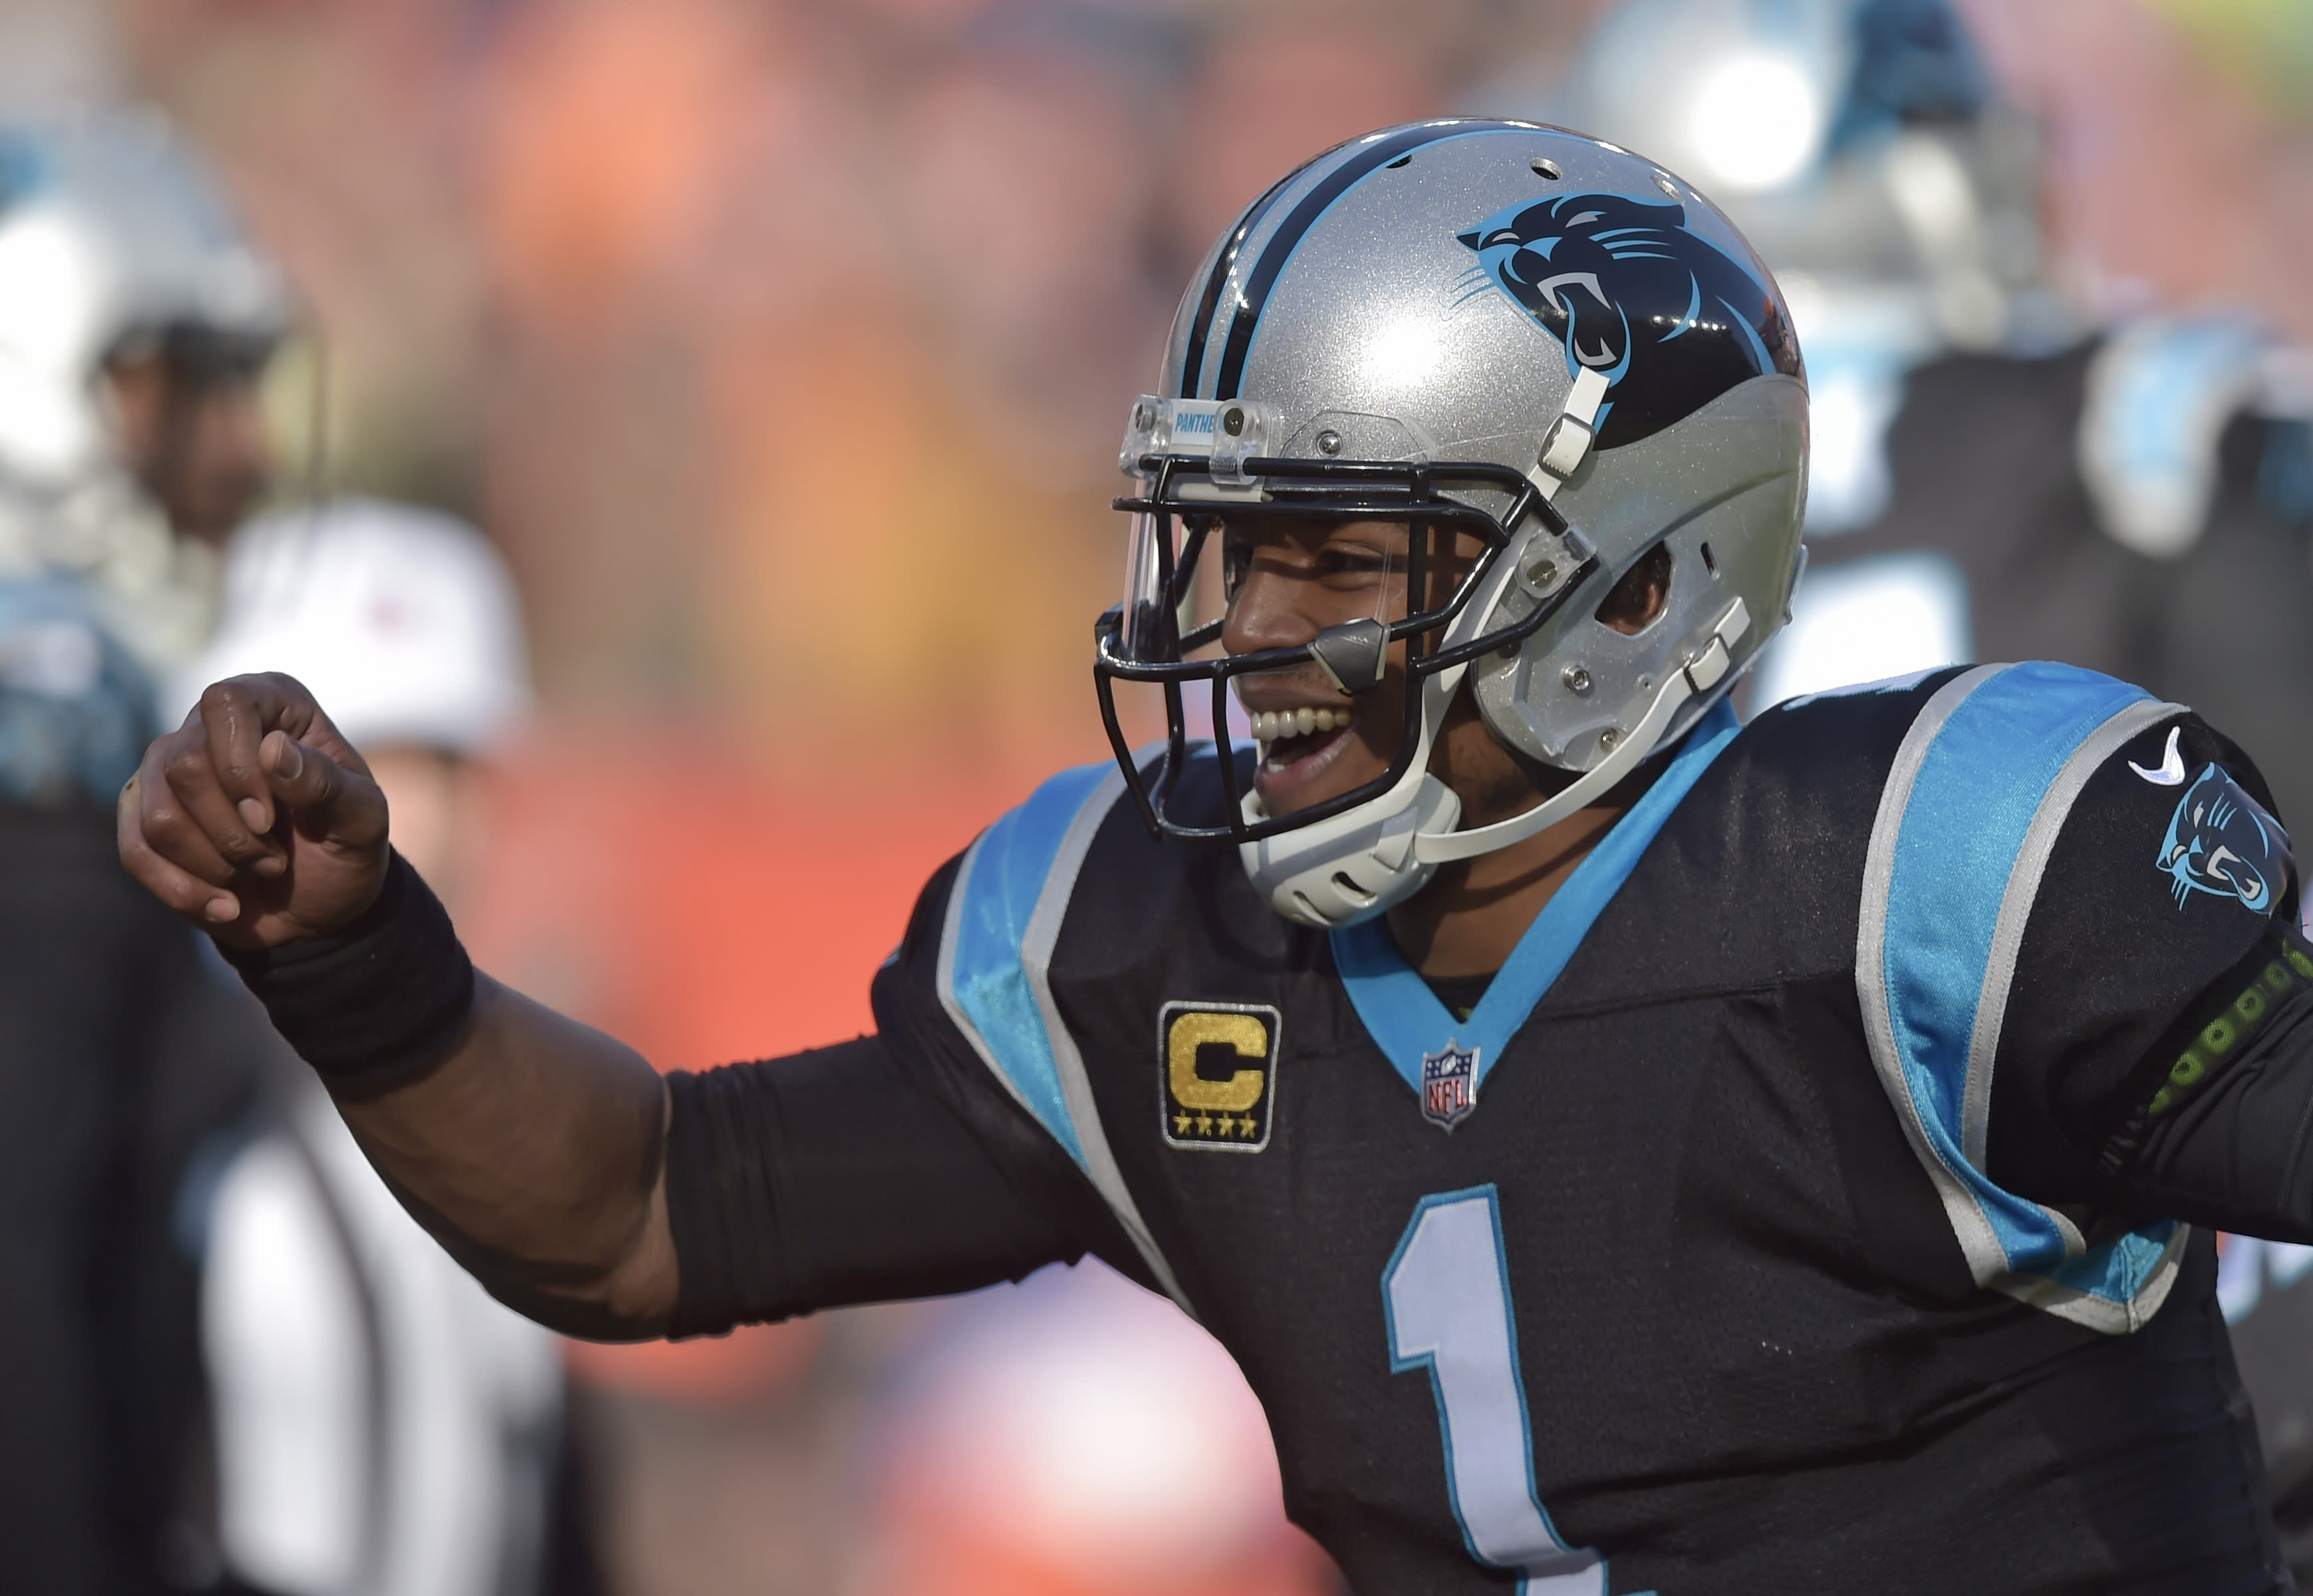 70cce89a 2019 NFL preview: Cam Newton's health huge for Panthers